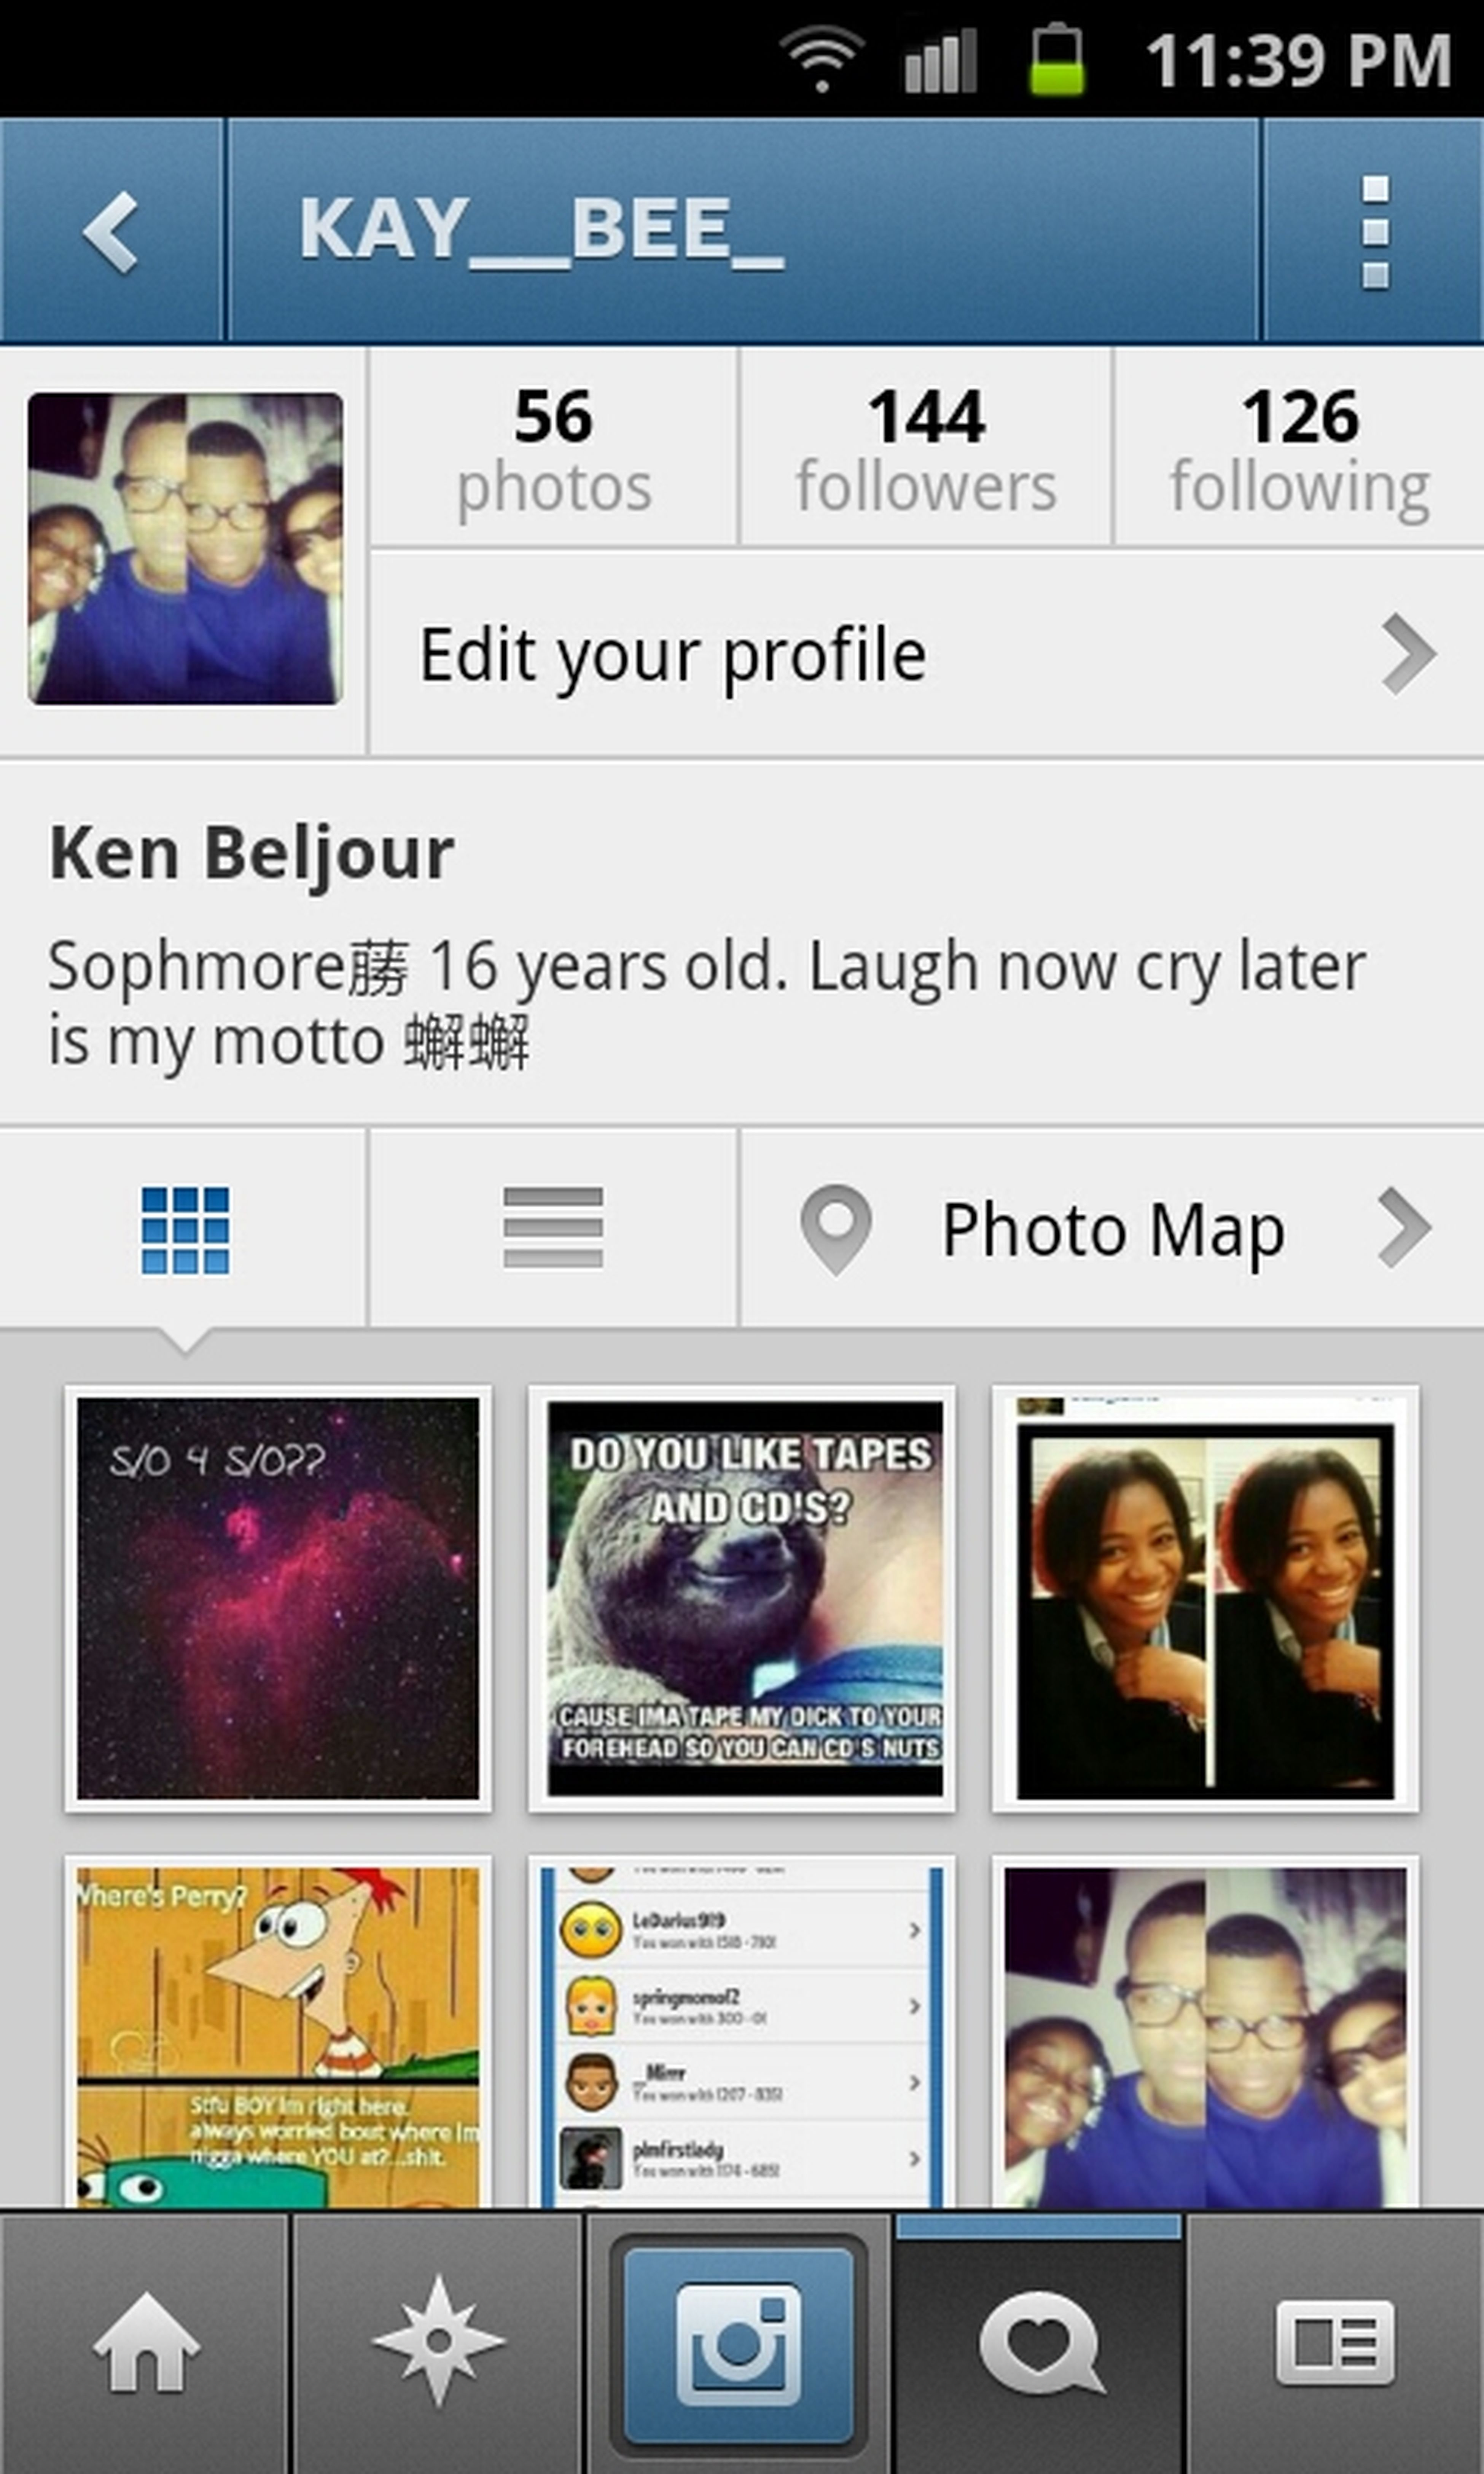 Can Y'all Follow My Instagram!@kay__bee_